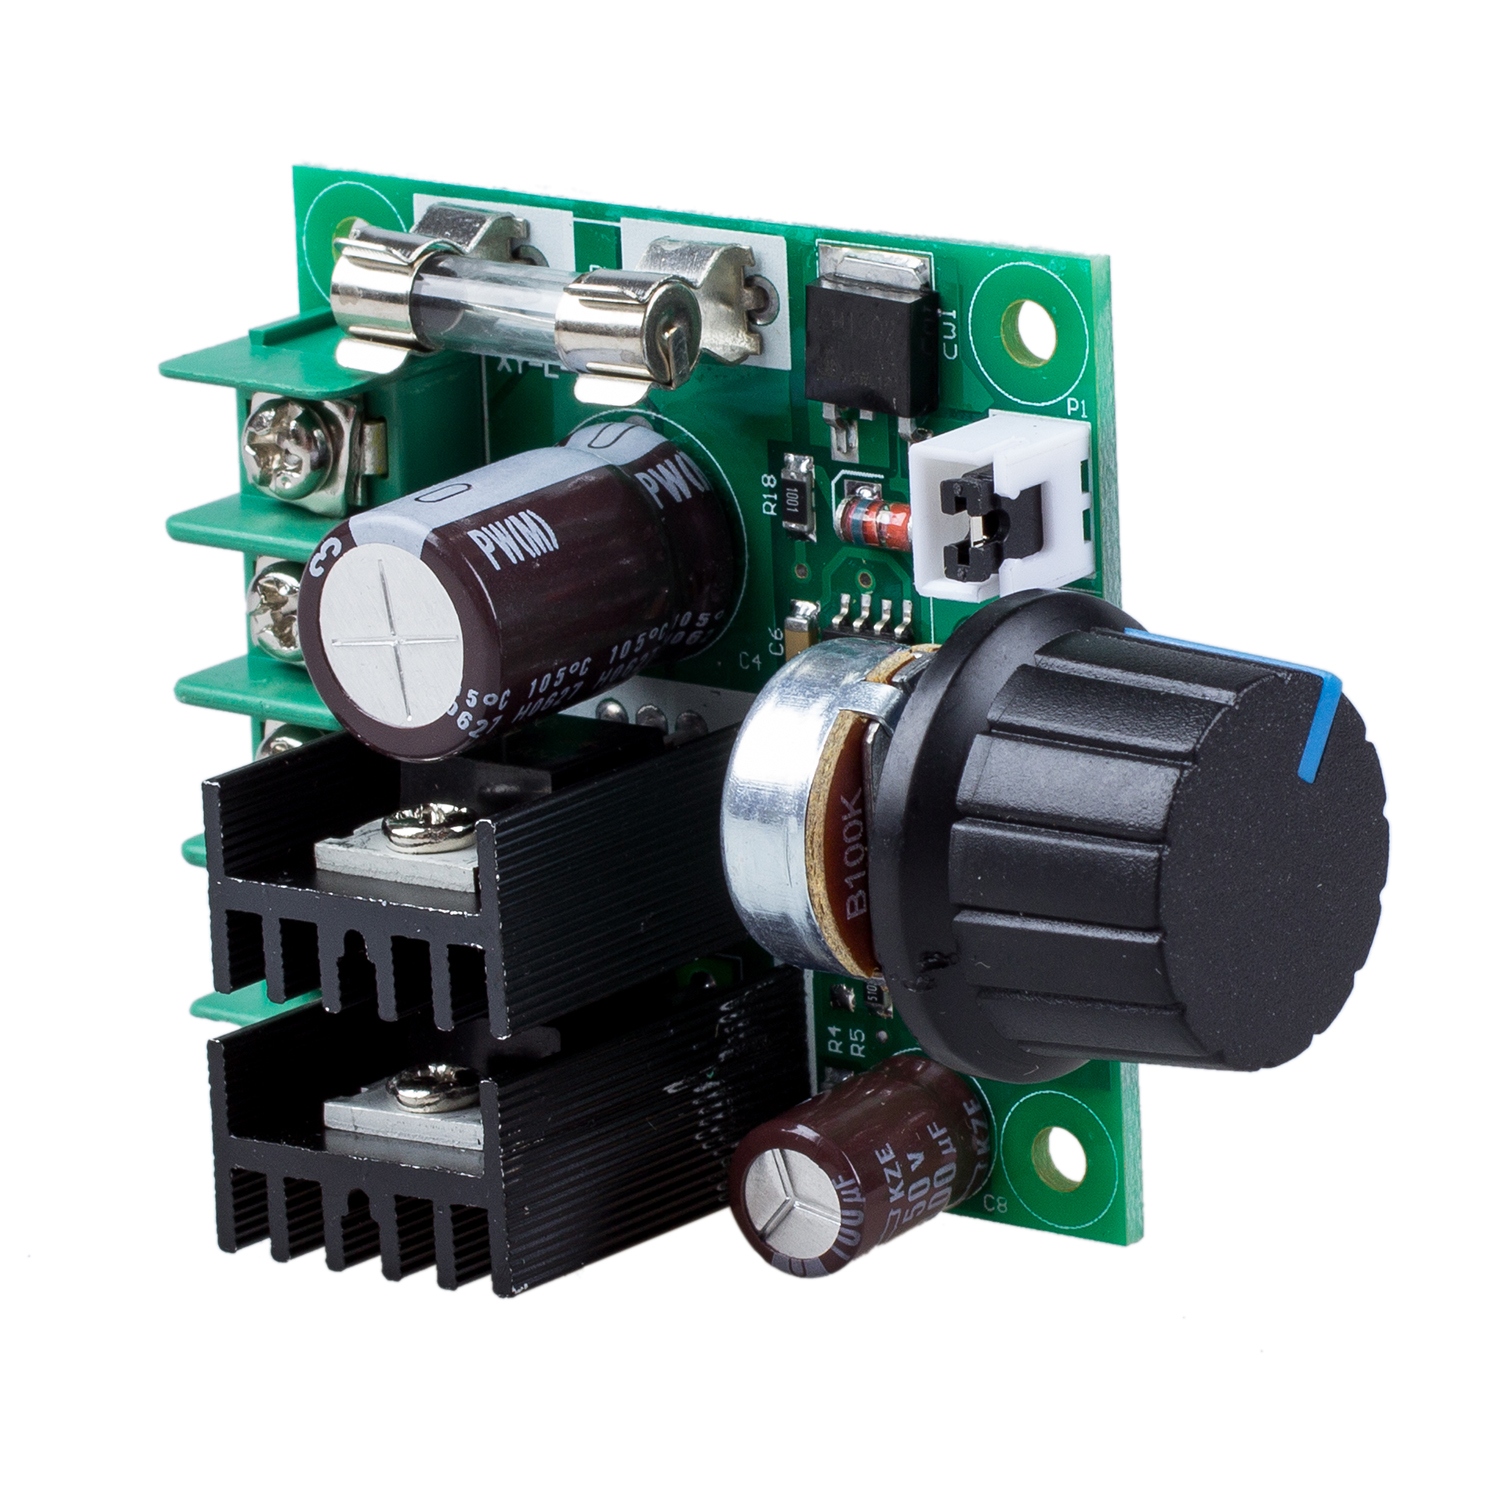 Pwm 10a 12v 40v dc motor speed controller buy in pakistan for Motor with speed control